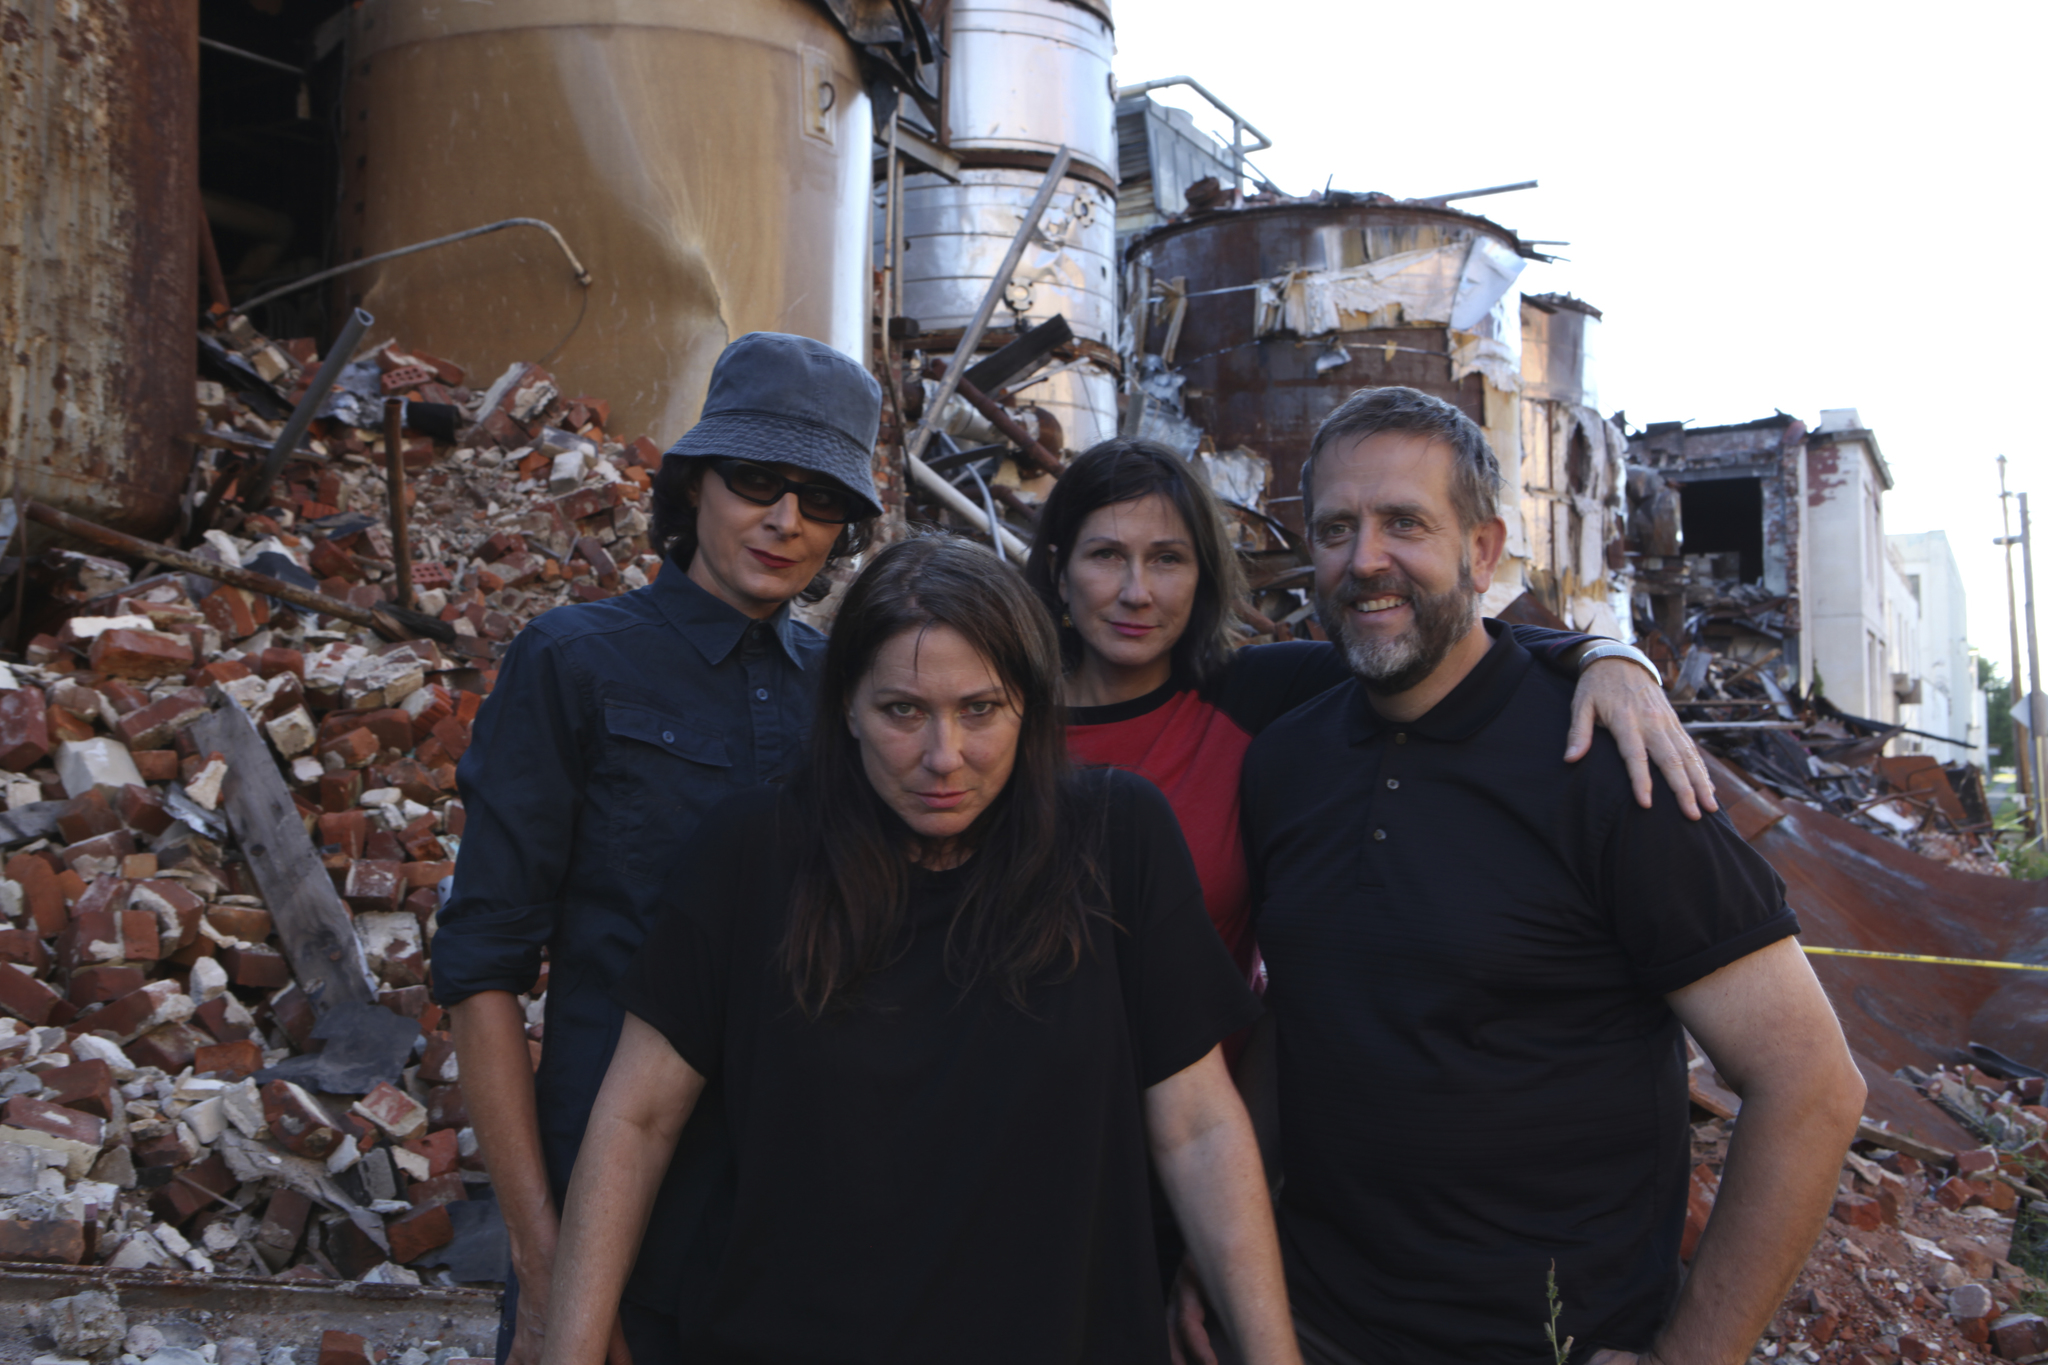 the breeders 2018 tour dates tickets pre sale all nerve stream download tour 06 April – LOS ANGELES, CA, Theatre at Ace Hotel 07 April – SANTA ANA, CA, The Observatory 08 April – SAN FRANCISCO, CA, The Masonic 10 April – PORTLAND, OR, McMenamins Crystal Ballroom 11 April – VANCOUVER, BC, Commodore Ballroom 13 April – SEATTLE, WA, Showbox SoDo 15 April – BOISE, ID, Knitting Factory 16 April – SALT LAKE CITY, UT, The Grand at The Complex 18 April – DENVER, CO, Ogden Theater 19 April – ALBUQUERUE, NM, Sunshine Theater 21 April – AUSTIN, TX, Emo's 22 April – DALLAS, TX, House Of Blues 23 April – HOUSTON, TX, House Of Blues 25 April – BIRMINGHAM, AL, Iron City 26 April – NASHVILLE, TN, Cannery Ballroom 28-29 April – CINCINNATI, OH, Homecoming Festival 30 April – BROOKLYN, NY, Brooklyn Steel 02 May – PORT CHESTER, NY, Capitol Theater 04 May – BOSTON, MA, House Of Blues 05 May – MONTREAL, QC, Corona Theater 06 May – TORONTO, ON, Phoenix Concert Theater 08 May – CHICAGO, IL, Vic Theater 09 May – MILWAUKEE, WI, The Rave 11 May – KANSAS CITY, MO, The Truman 13 May – MINNEAPOLIS, MN, First Avenue 27 May – DUBLIN, Vicar Street 28 May – EDINBURGH, Liquid Room 29 May – LEEDS, Stylus 30 May – LONDON, Roundhouse 02 June – COGNAC, Westrock 05 June – FERRARA, Cortile Estense 06 June – MILAN, Santeria 26 June – HELSINKI, Tavastia 28 June – STOCKHOLM, Gruna Lund 03 July – HAMBURG, Fabrik 04 July – COLOGNE, Gloria 10 July – BRISTOL, Academy 11 July – BIRMINGHAM, Institute 13 July – MANCHESTER, Ritz